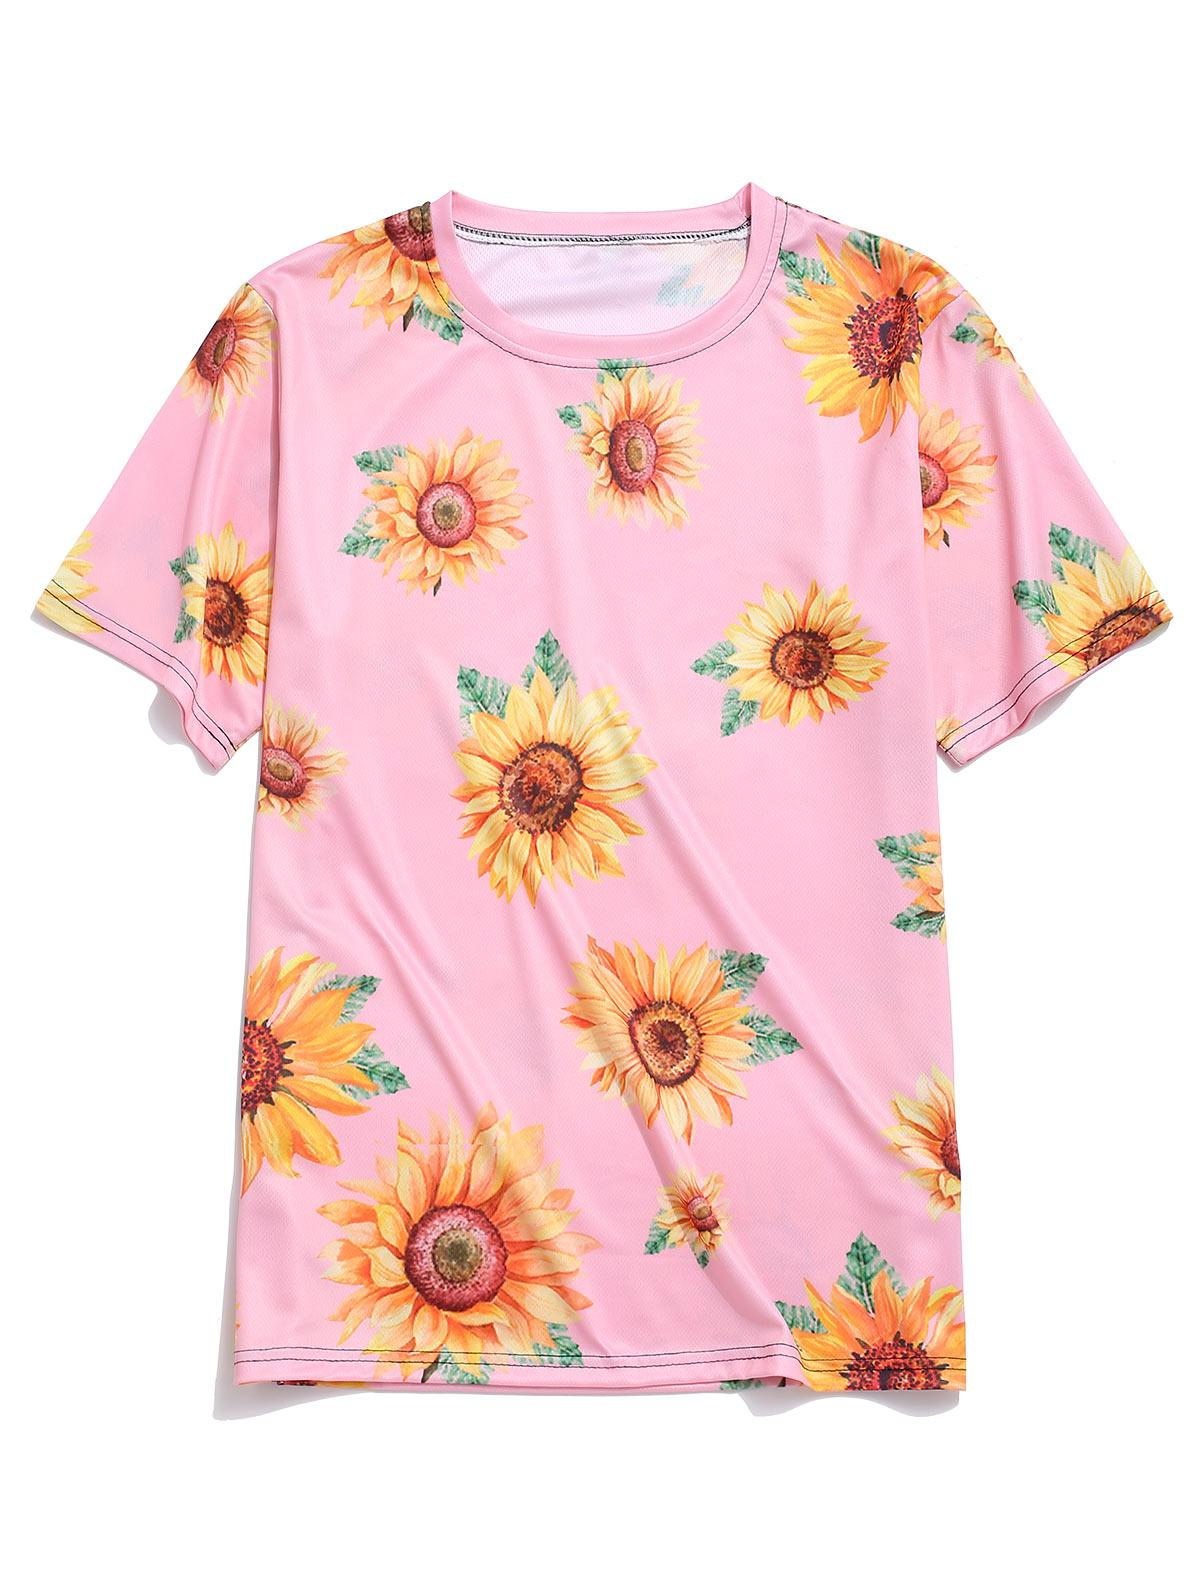 Short Sleeve Sunflower Print Vacation T-shirt фото